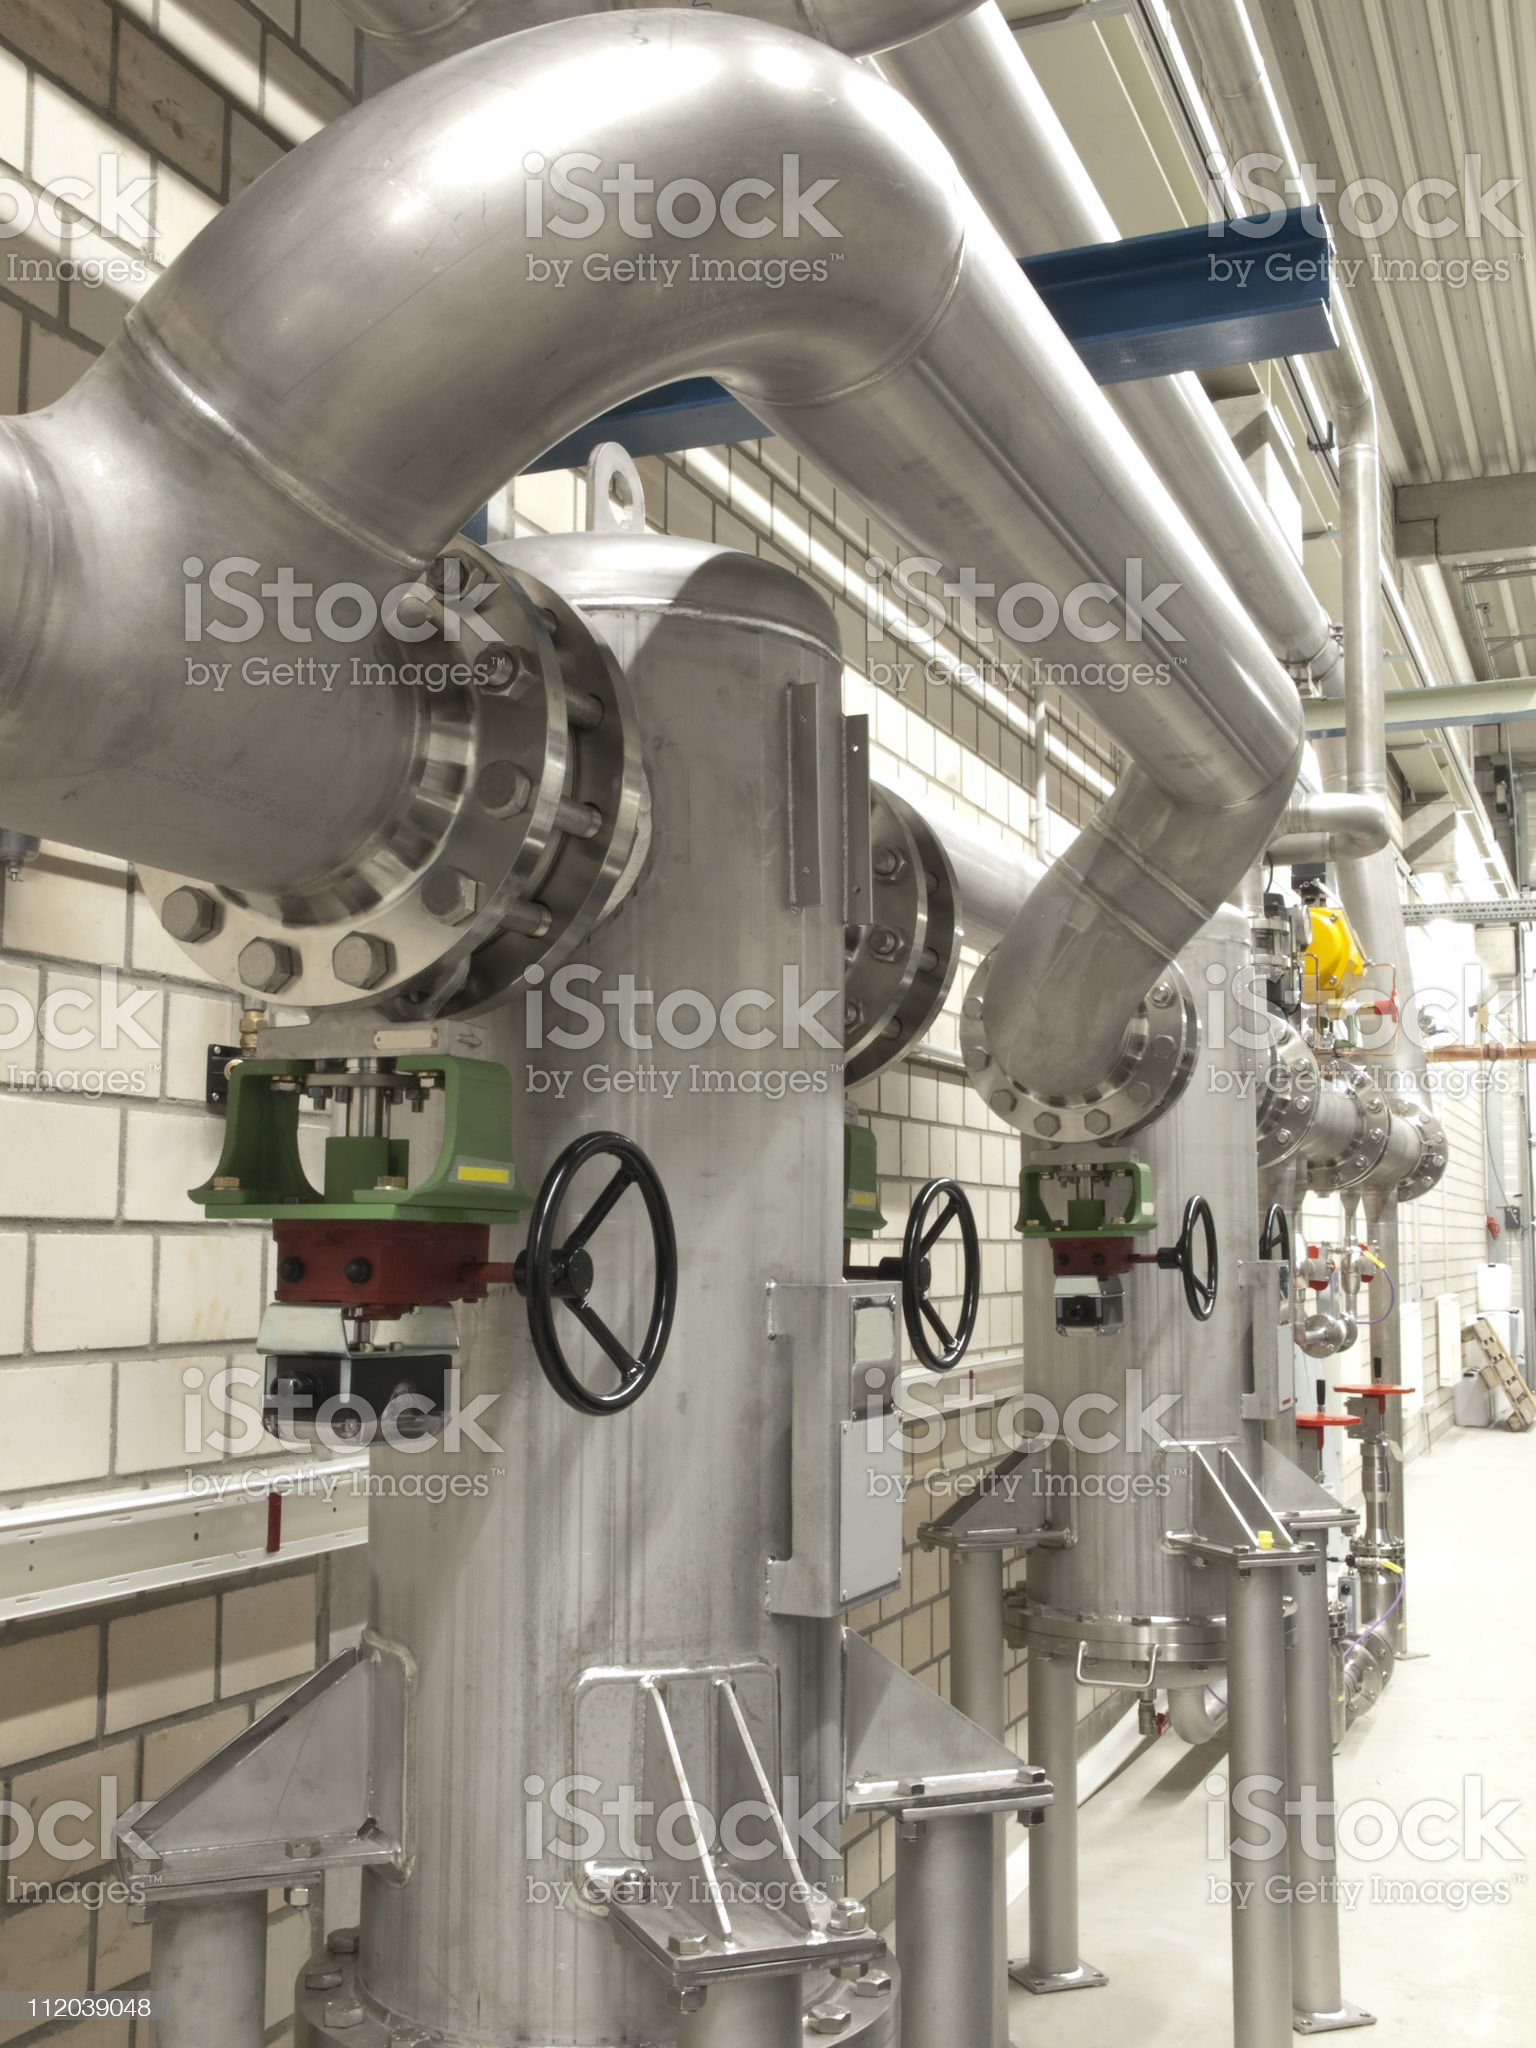 Stainless steel gas pipes royalty-free stock photo